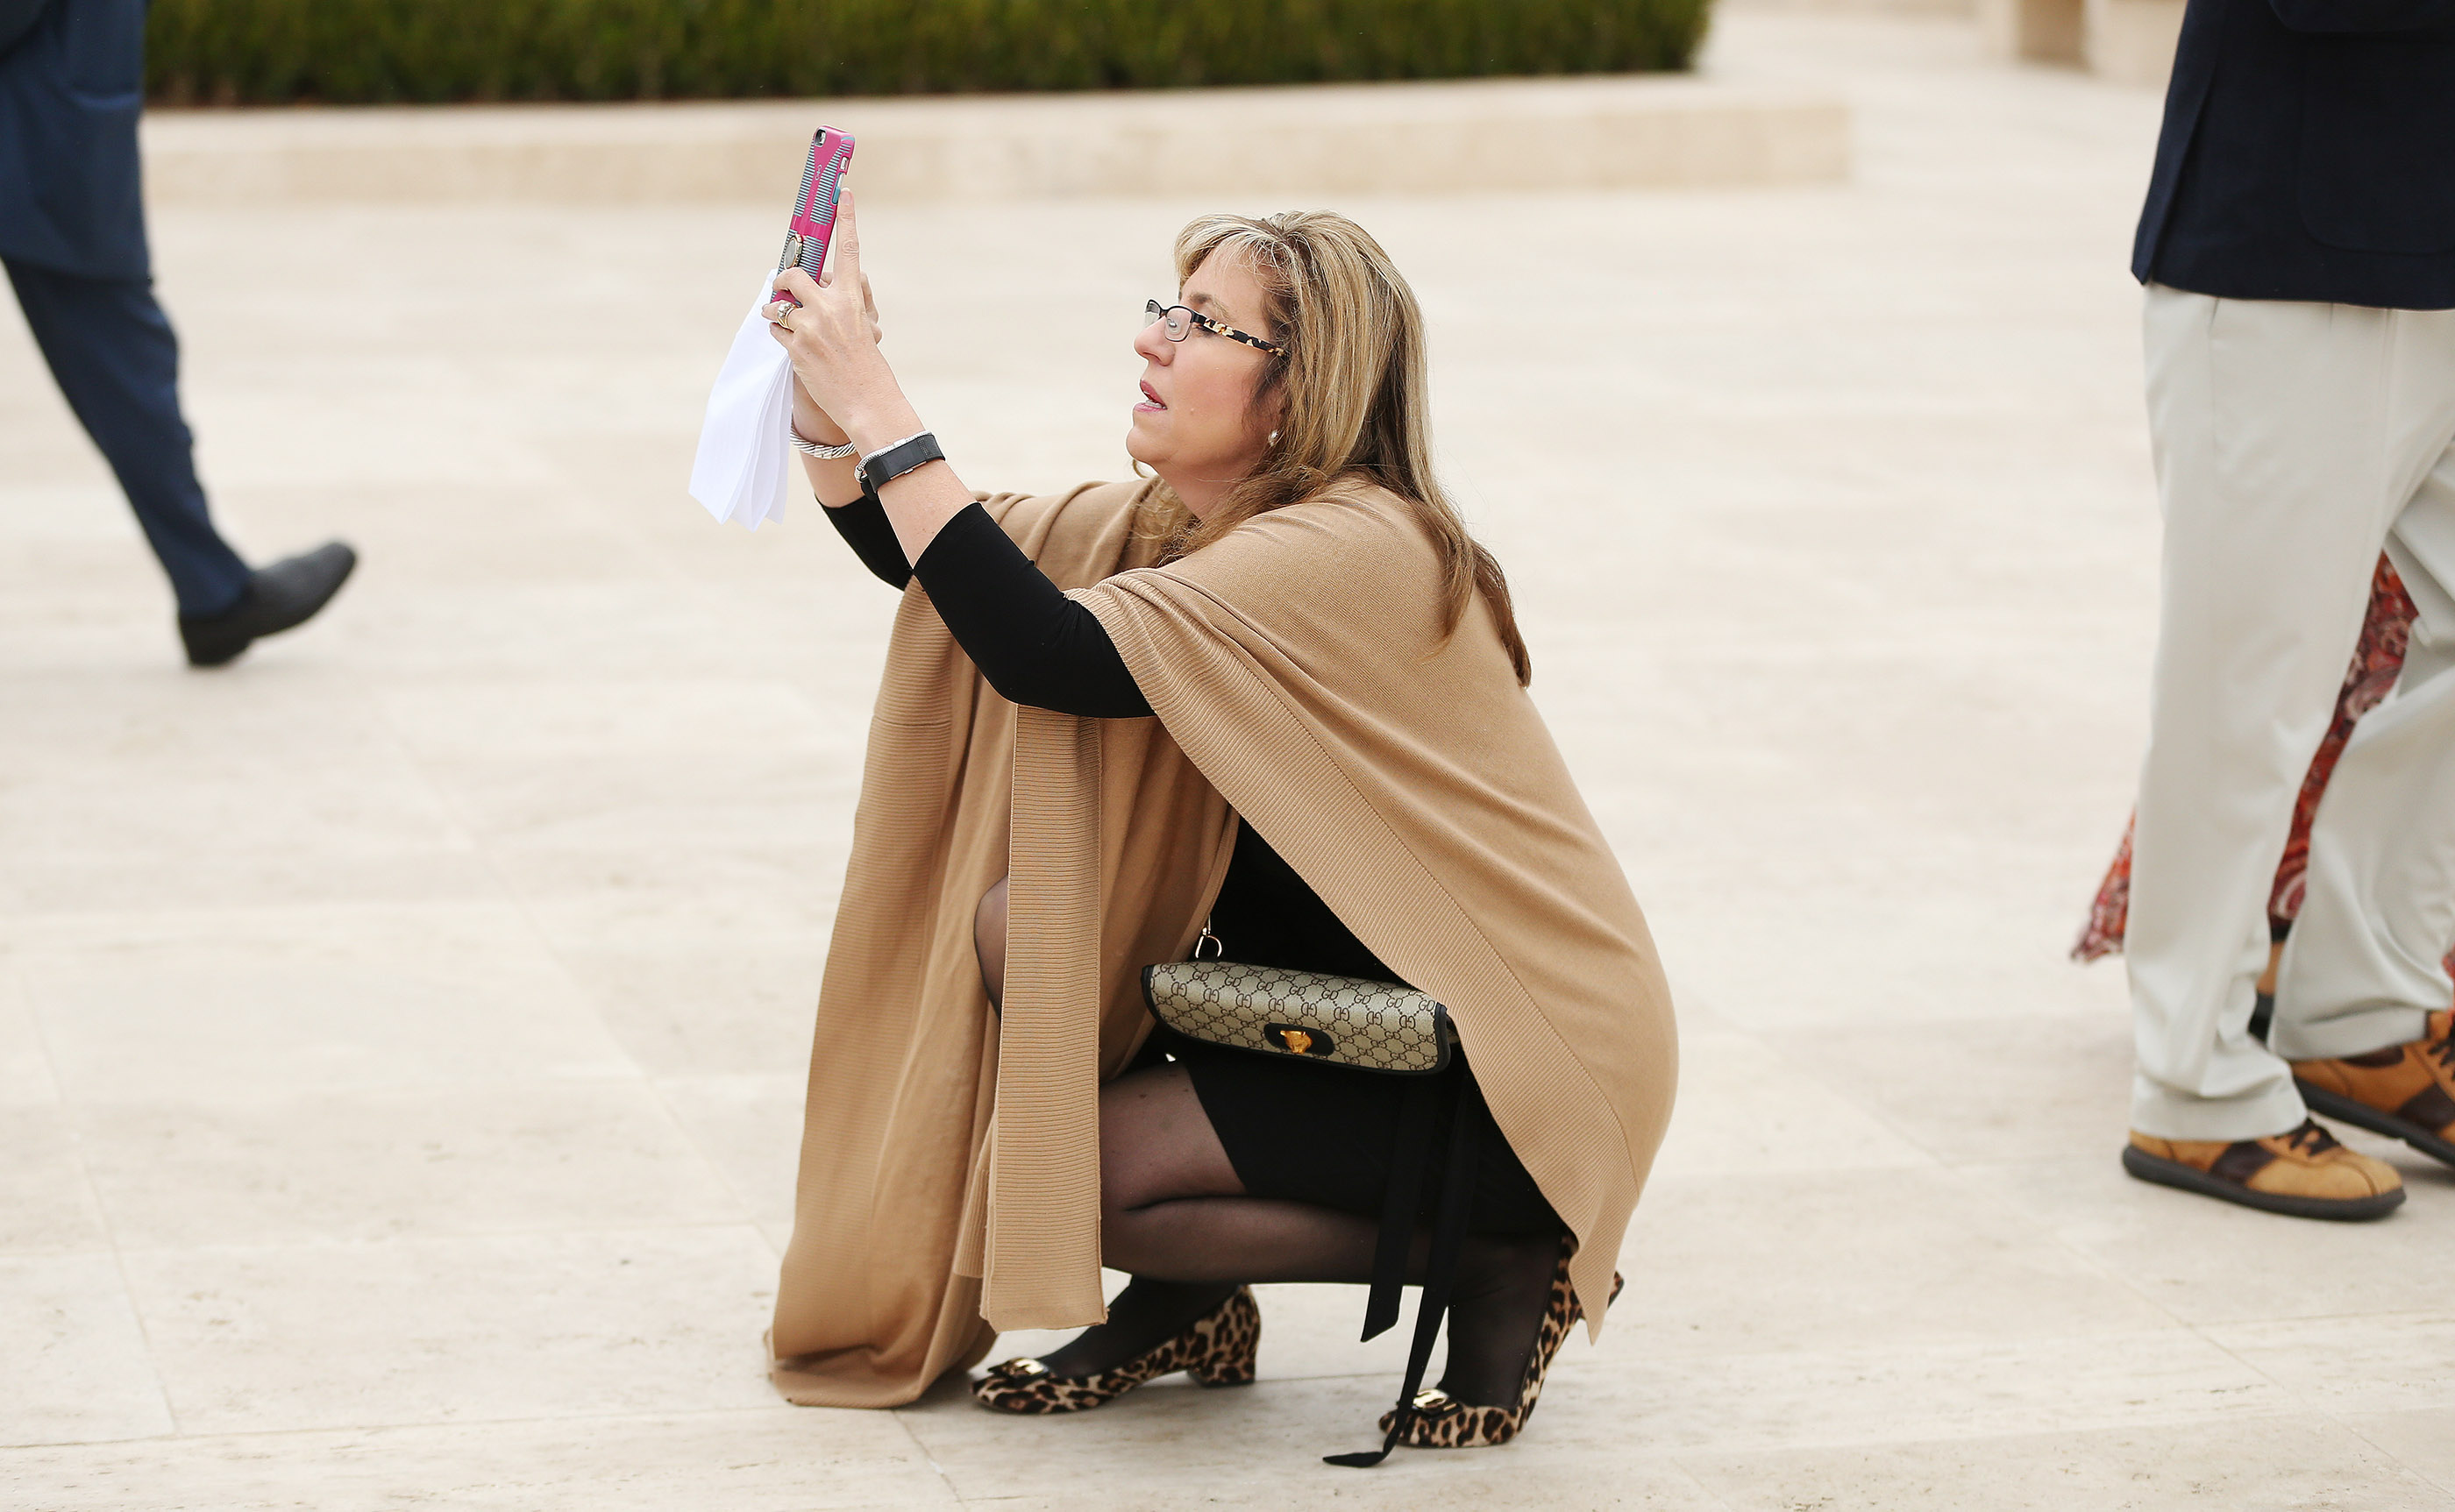 Daniella Piner shoots a photo outside of the Rome Italy Temple of The Church of Jesus Christ of Latter-day Saints during its dedication on Sunday, March 10, 2019.